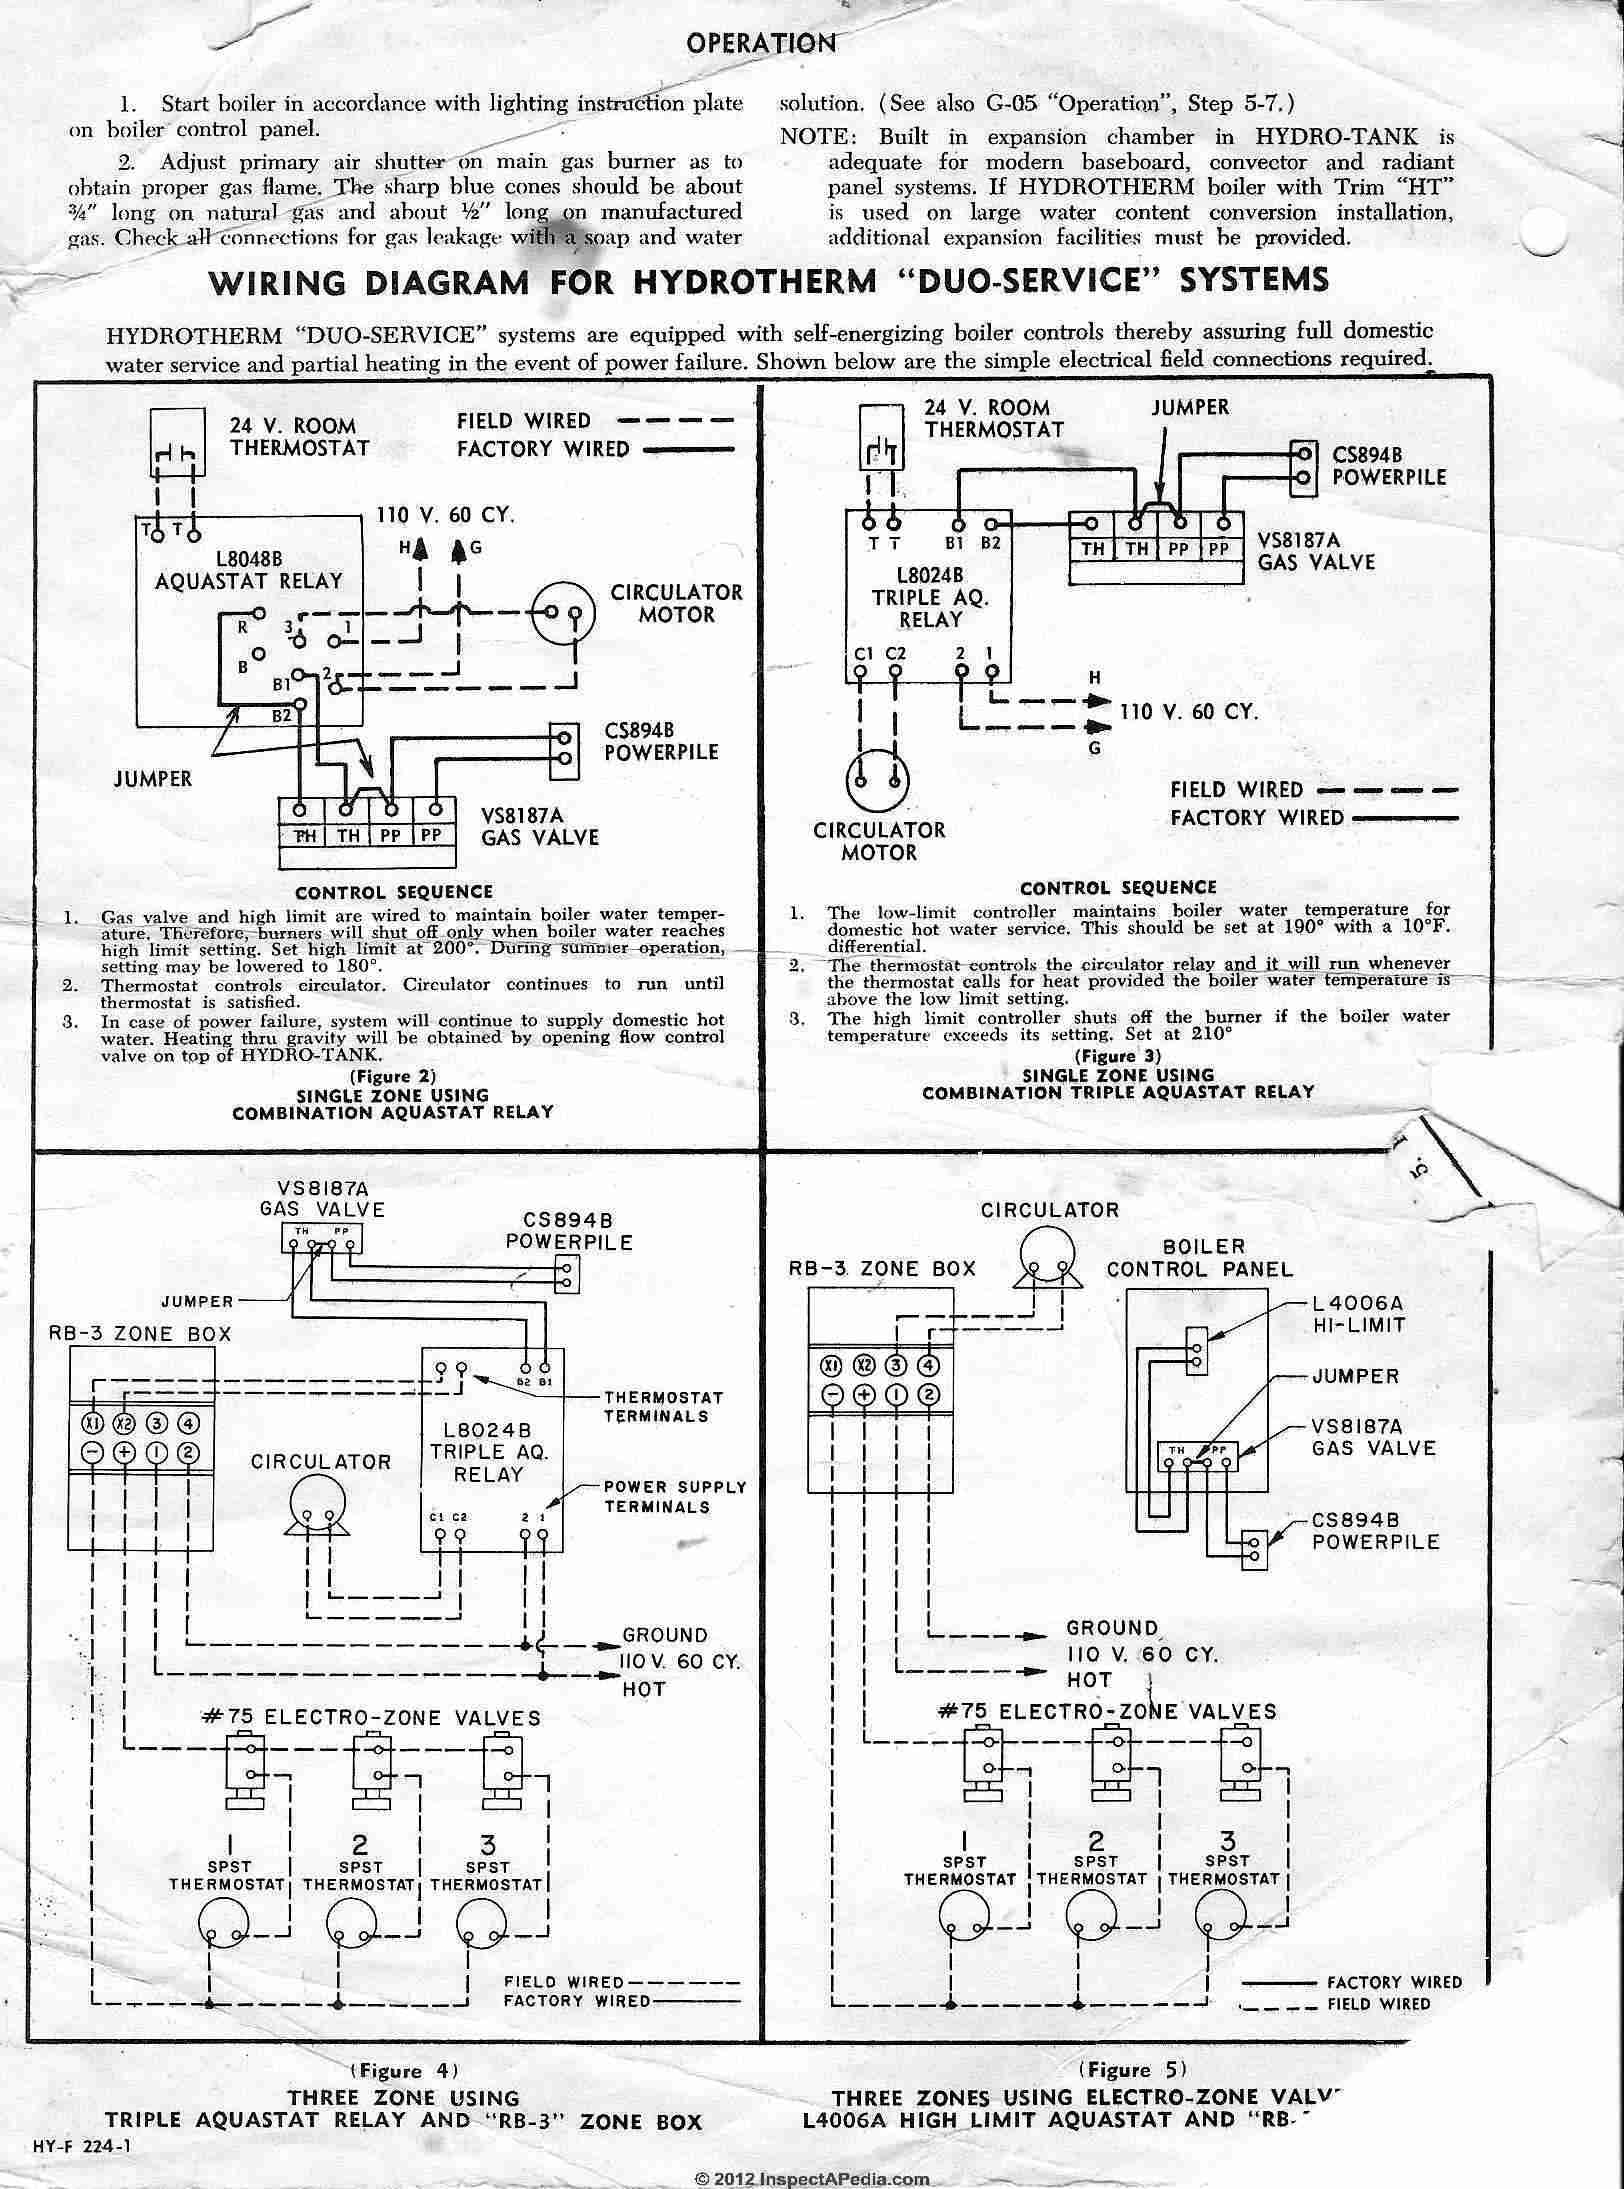 heating boiler aquastat control diagnosis troubleshooting repair honeywell l8024b aquastat wiring instructions